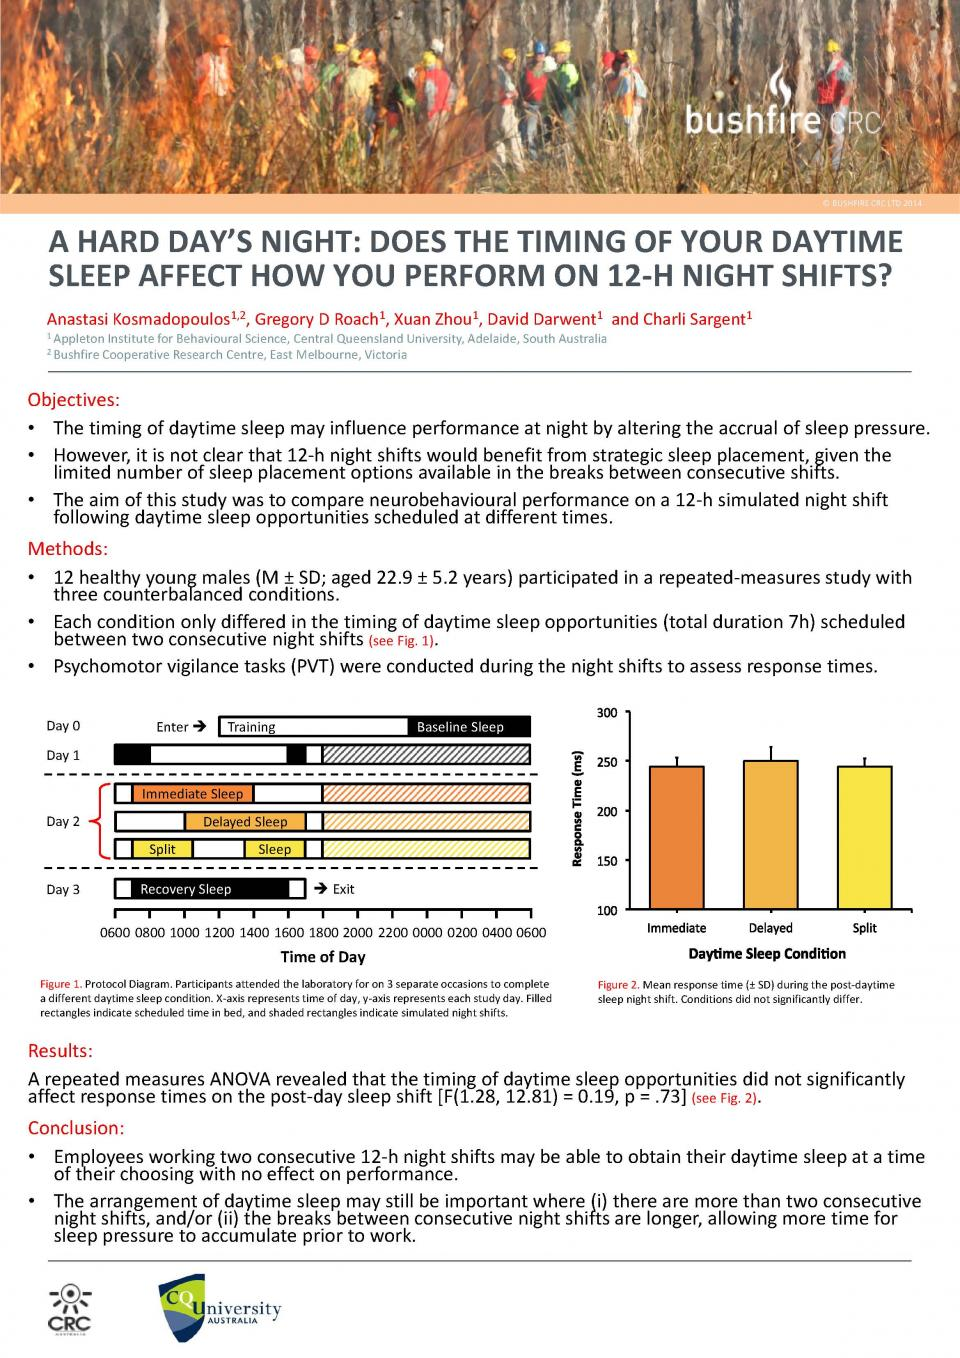 A hard day's night: Does the timing of your daytime sleep affect how you perform on 12h night shifts?